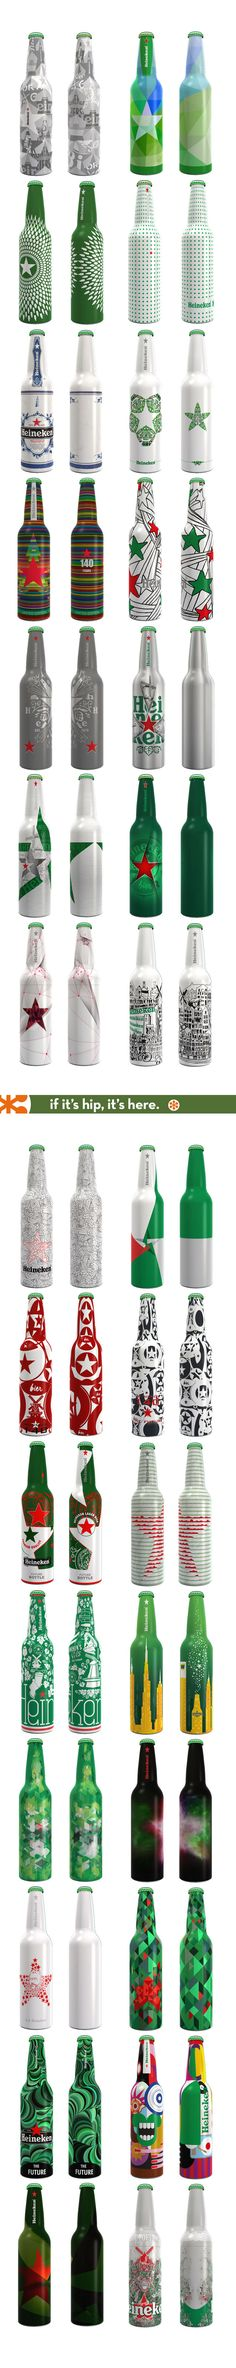 ALL the finalists and the winner of the Heineken Future Bottle Remix Competition.